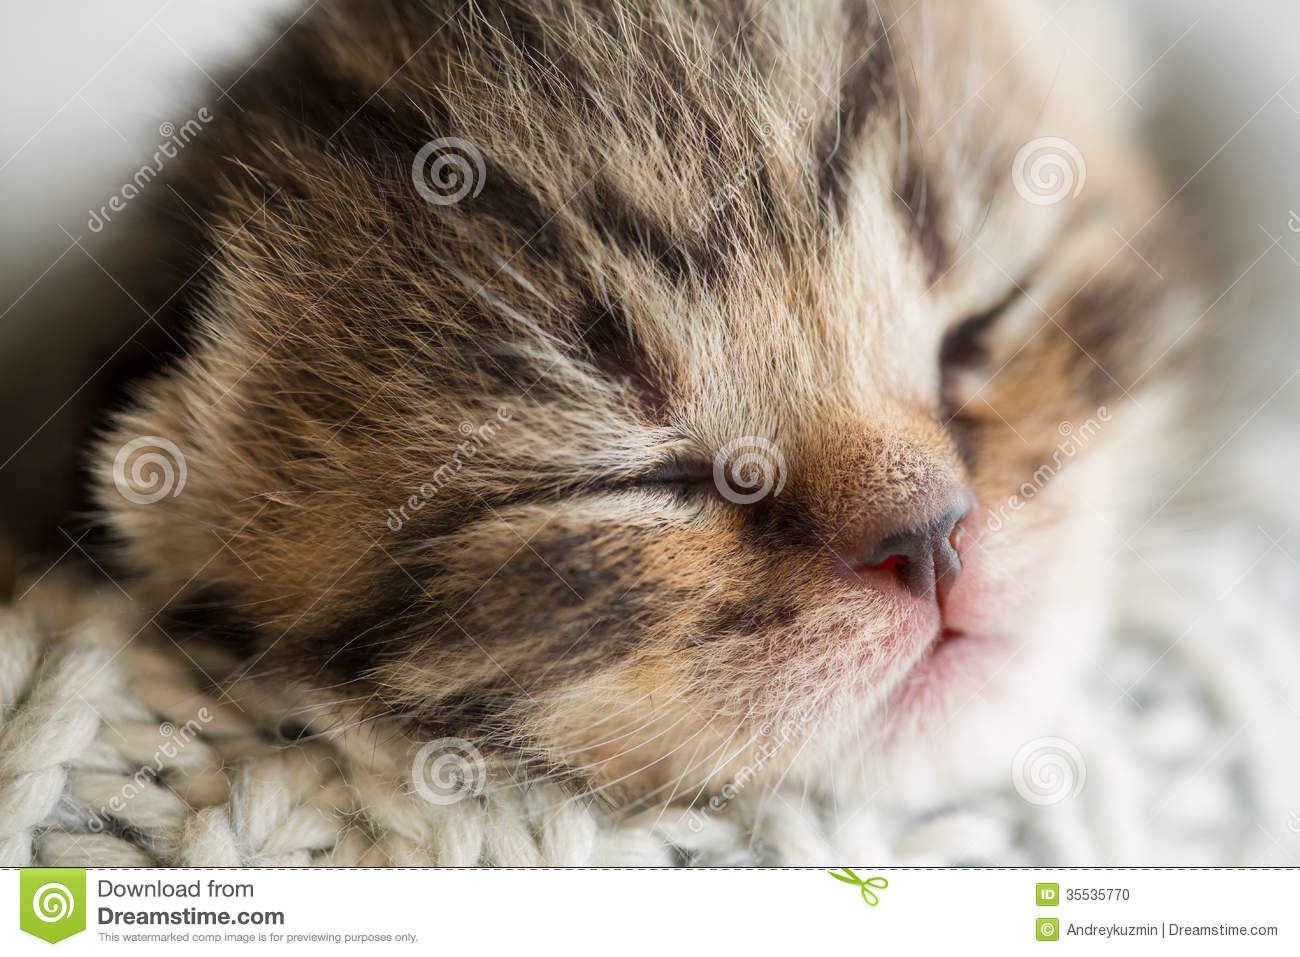 Cute Baby Boy Wallpapers Download Newborn Sleeping Baby Kitten Stock Photo Image Of